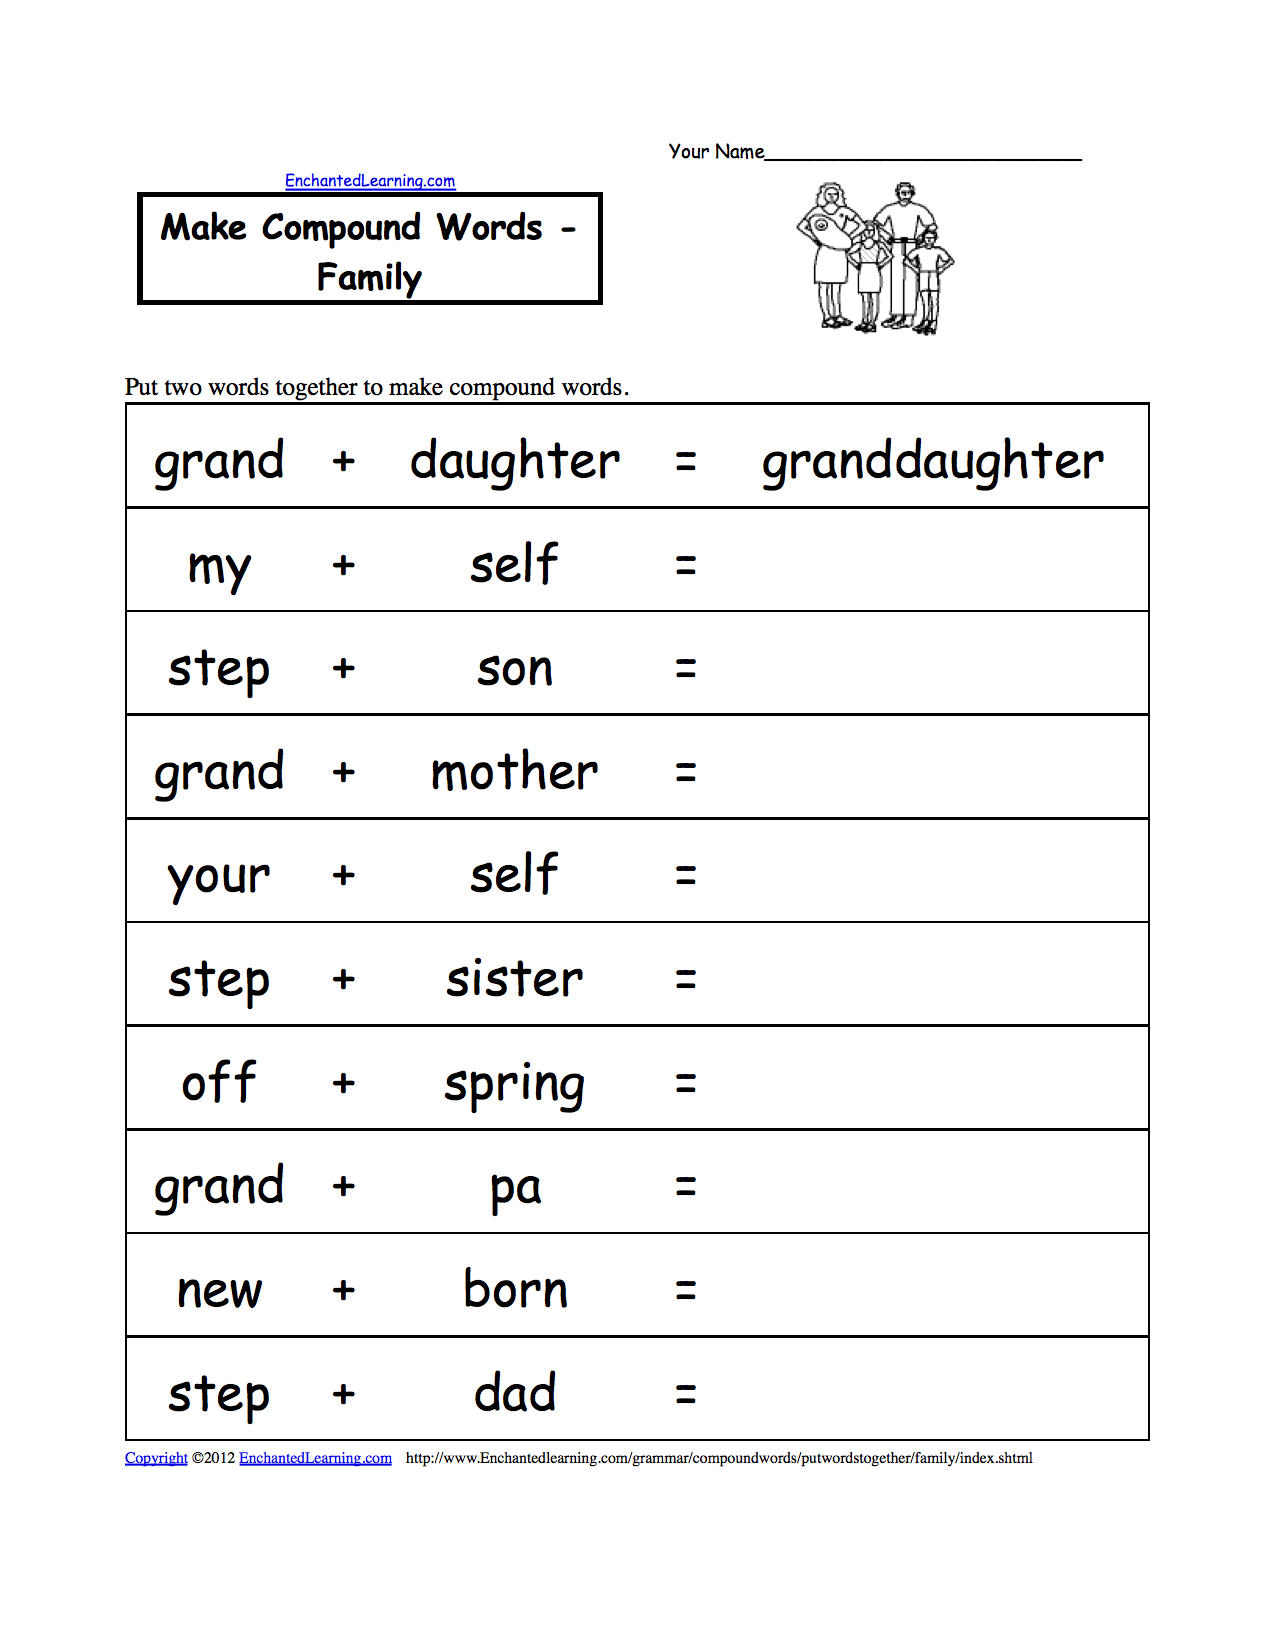 Worksheets Compound Words Worksheet family theme page spelling worksheets at enchantedlearning com make compound words